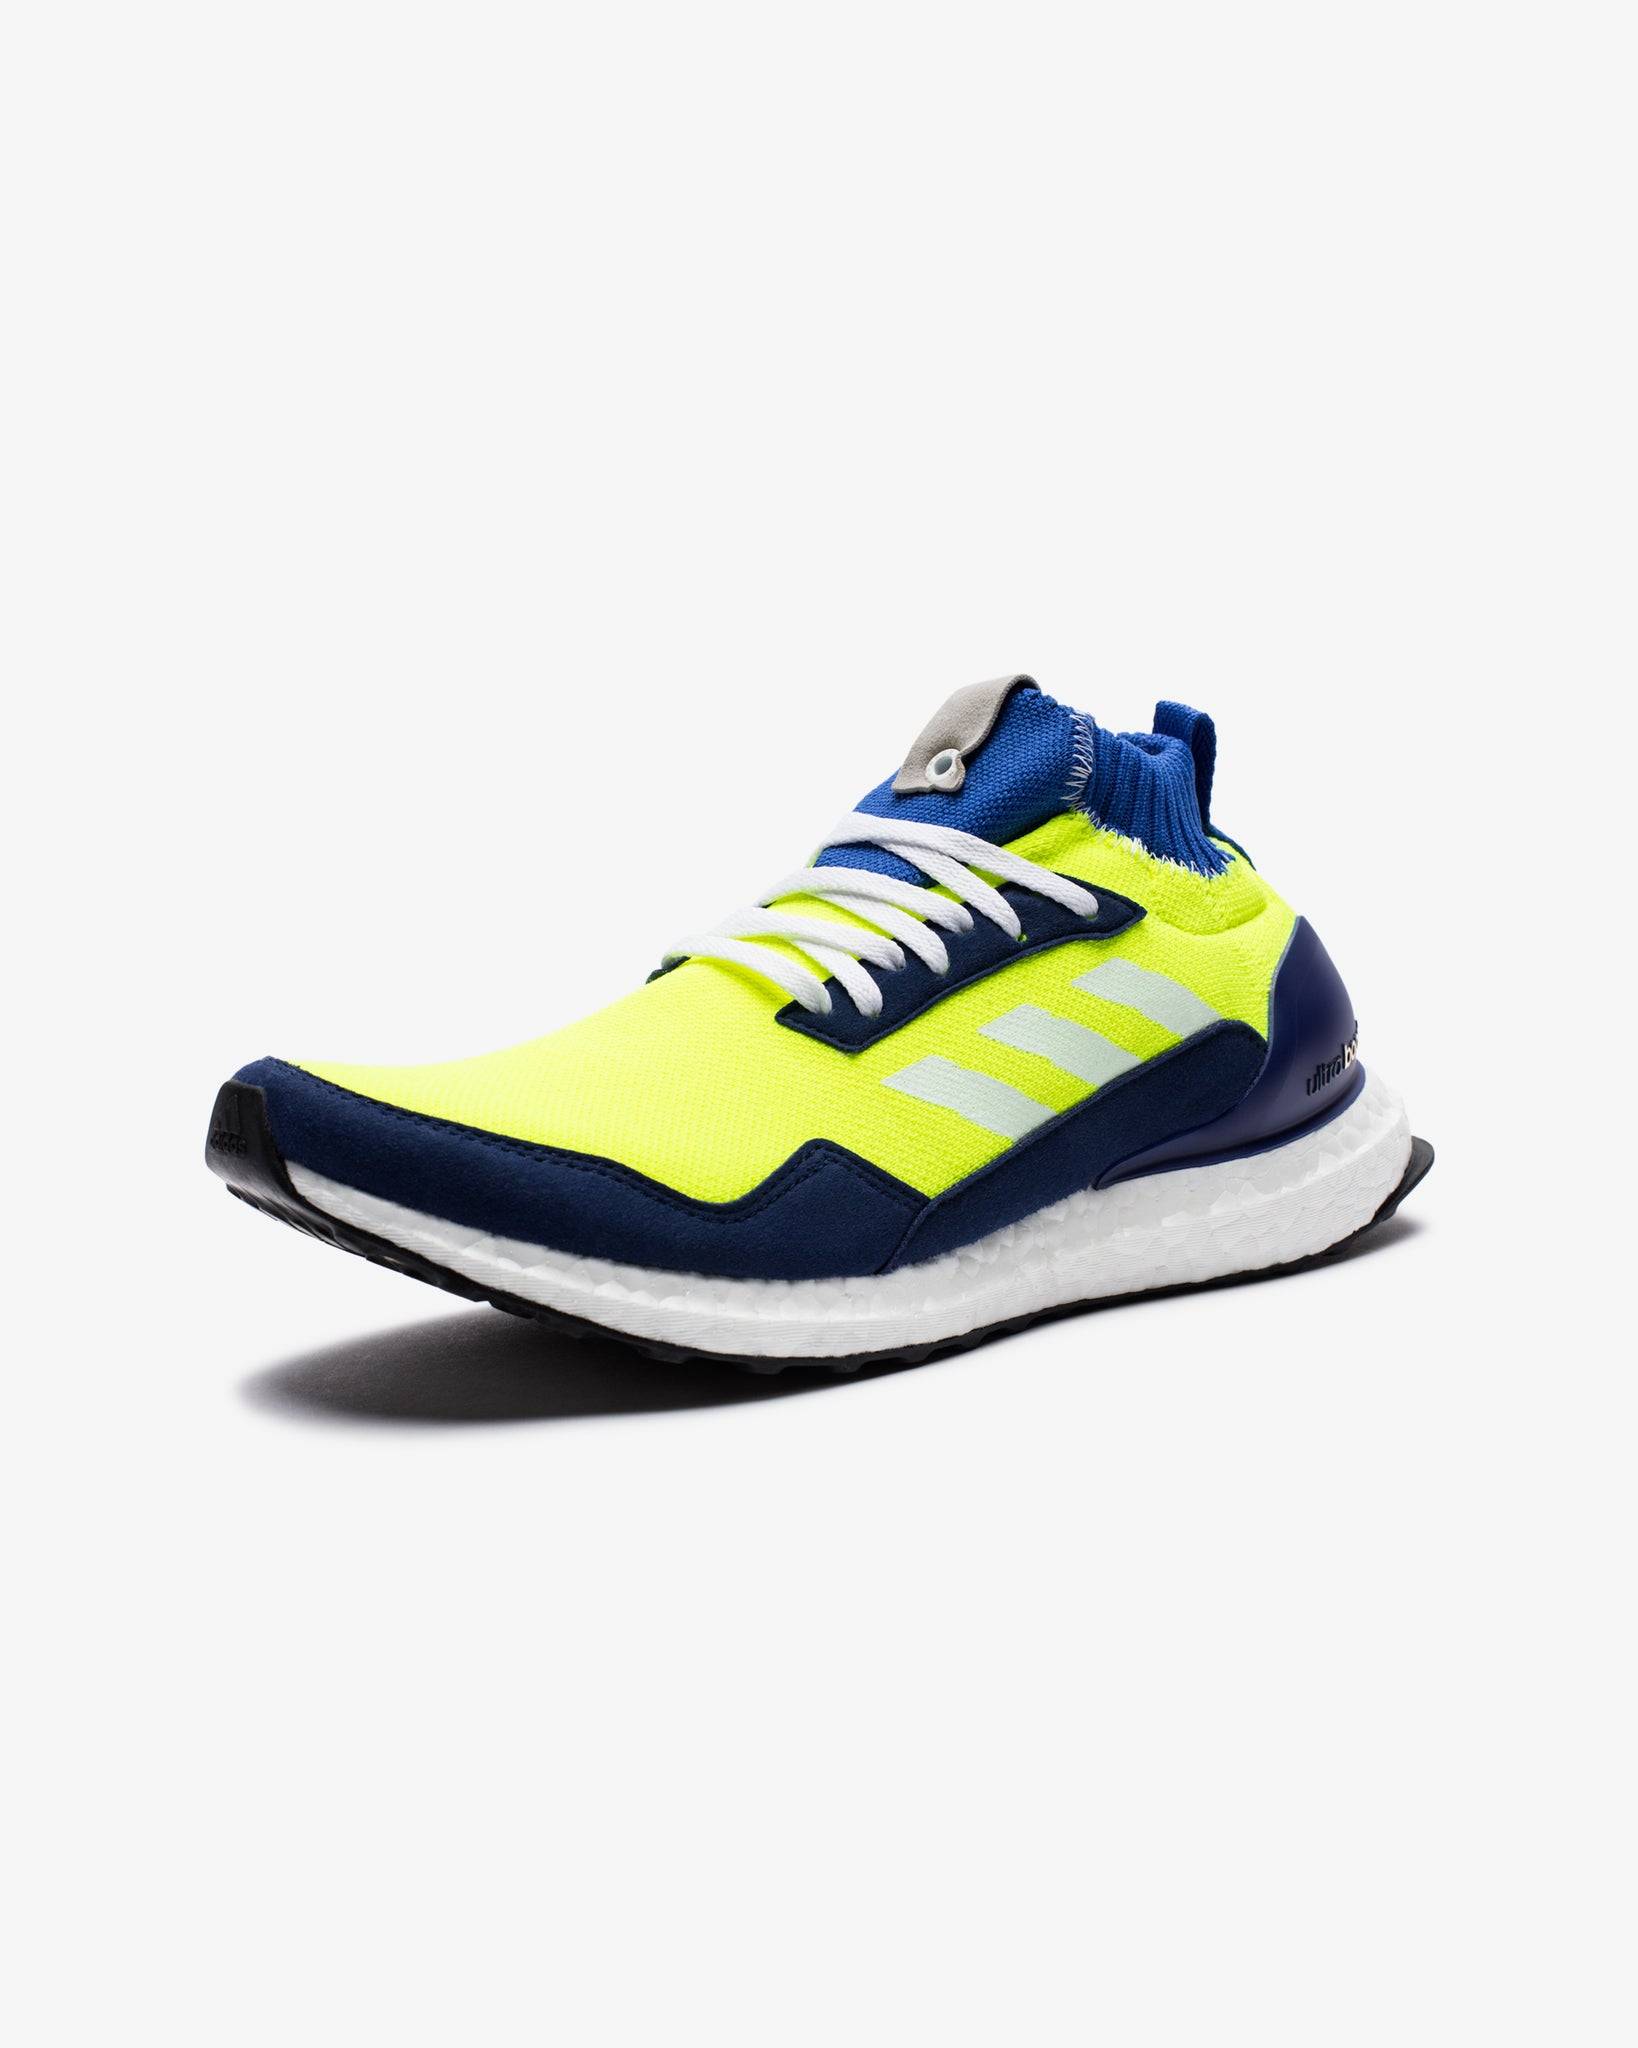 ULTRA BOOST MID PROTO - SOLARYELLOW/HIRESBLUE/FTWWHT